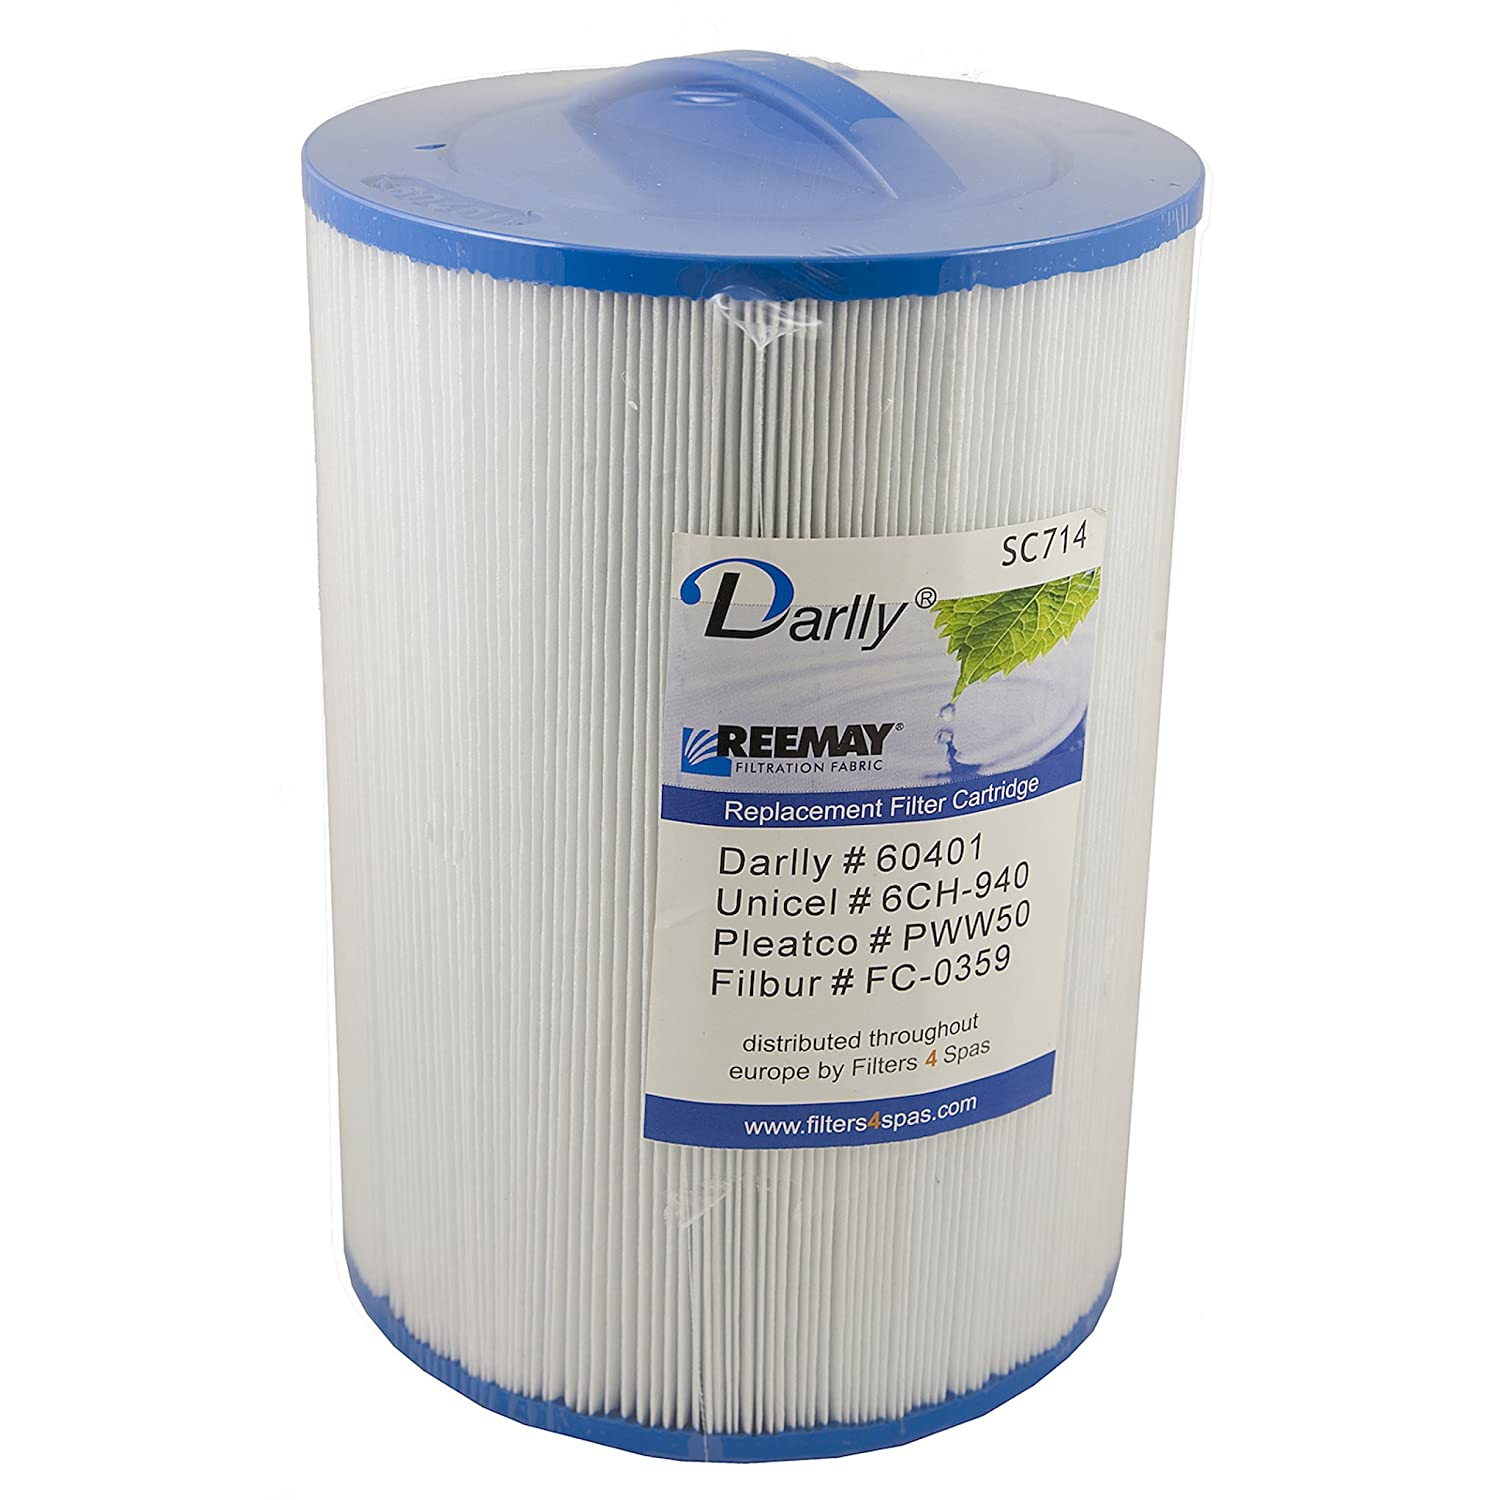 Darlly® Filter Replacement Filter SC714Lamella Filter Aegean Bull Frog Clearwater Spa Leisure Concepts